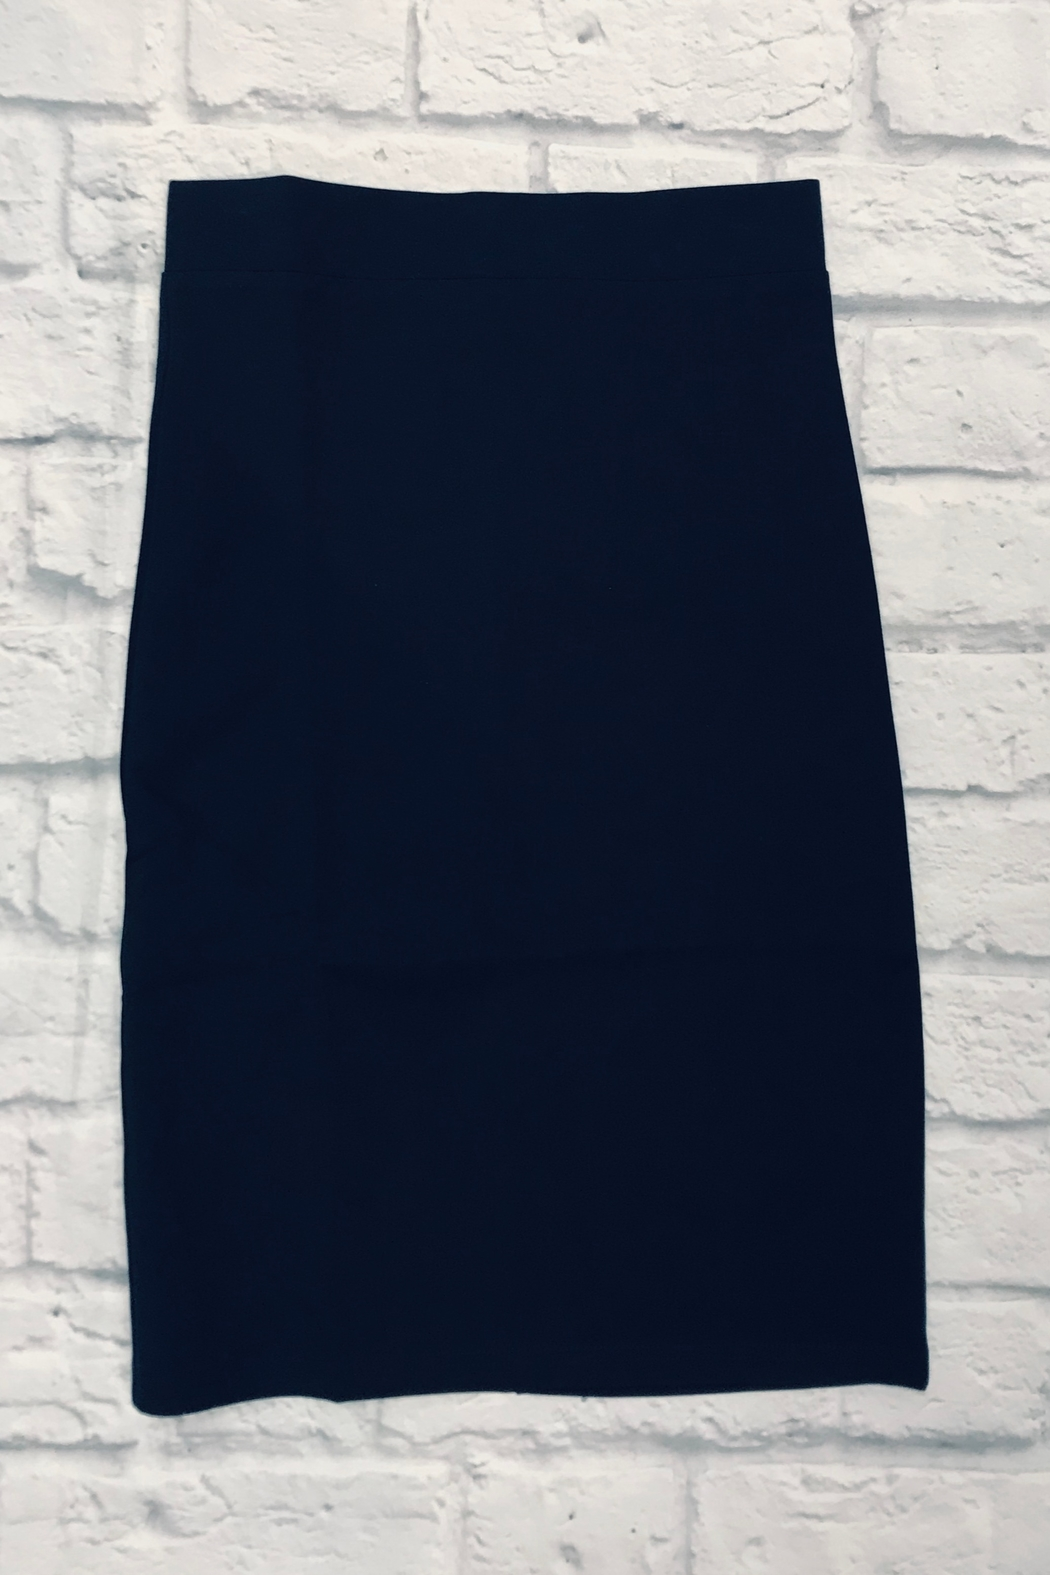 Three Bows GIRLS PENCIL SKIRT - Front Cropped Image